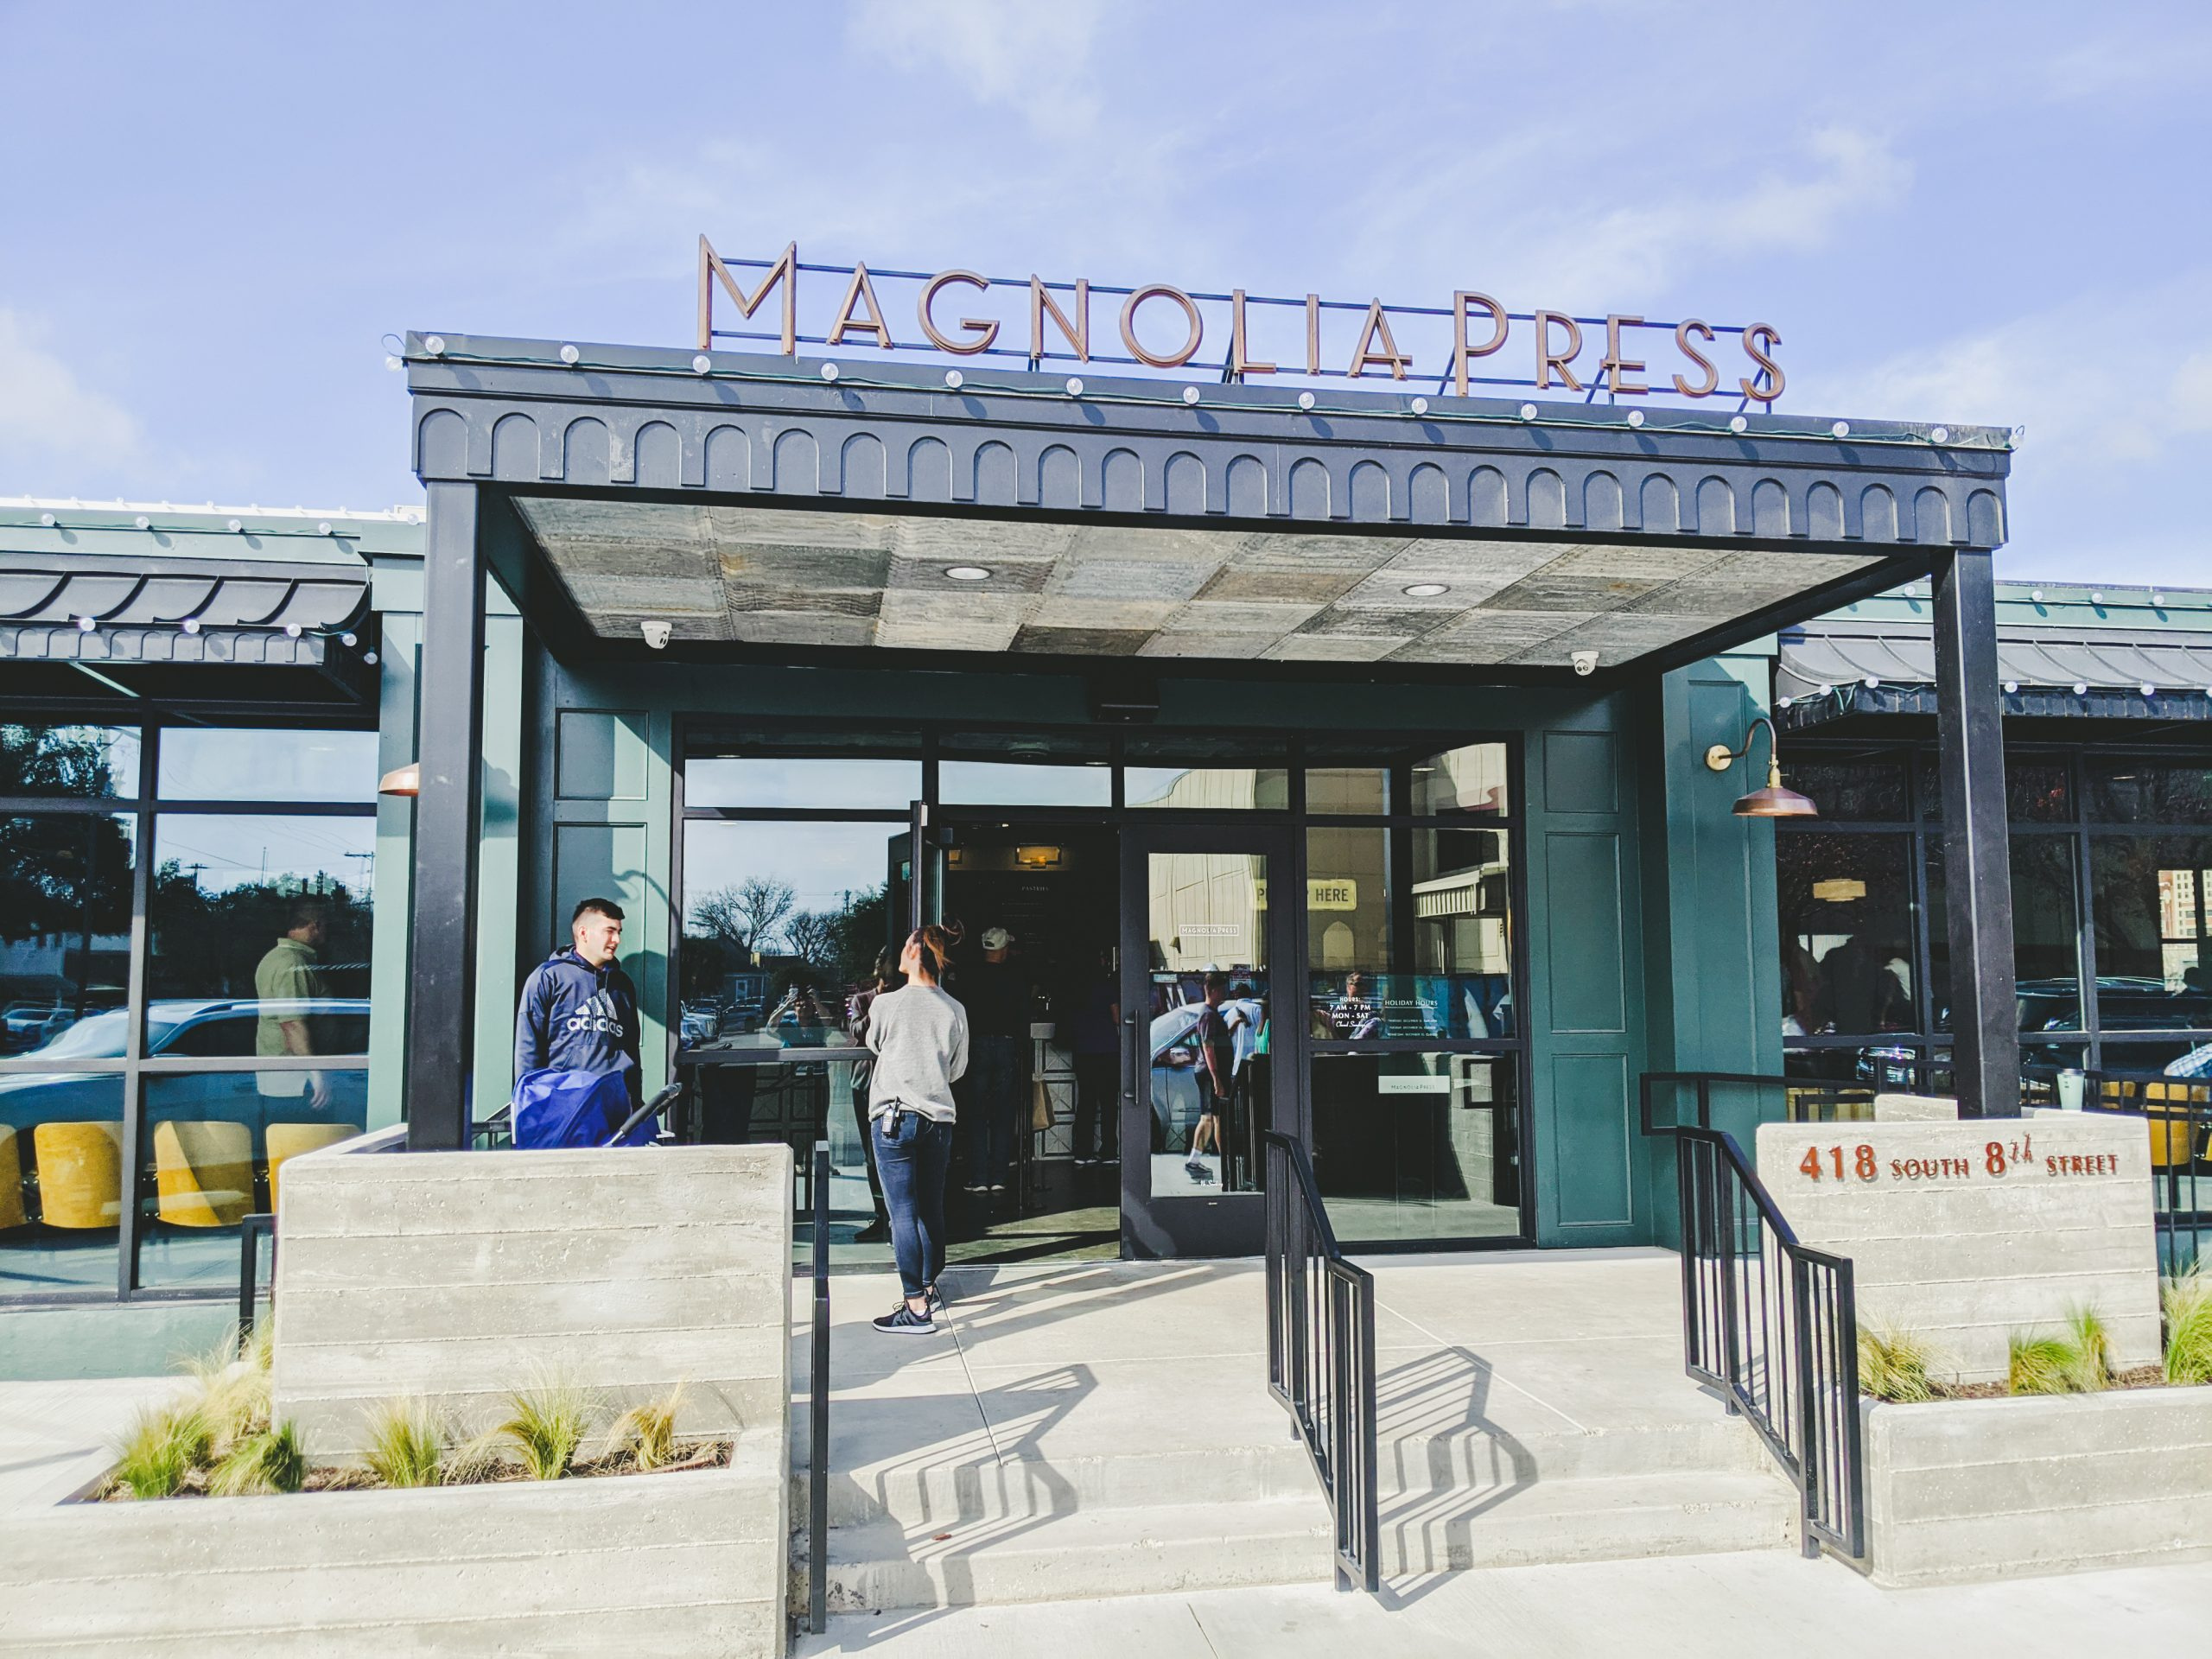 magnolia press coffee co. storefront